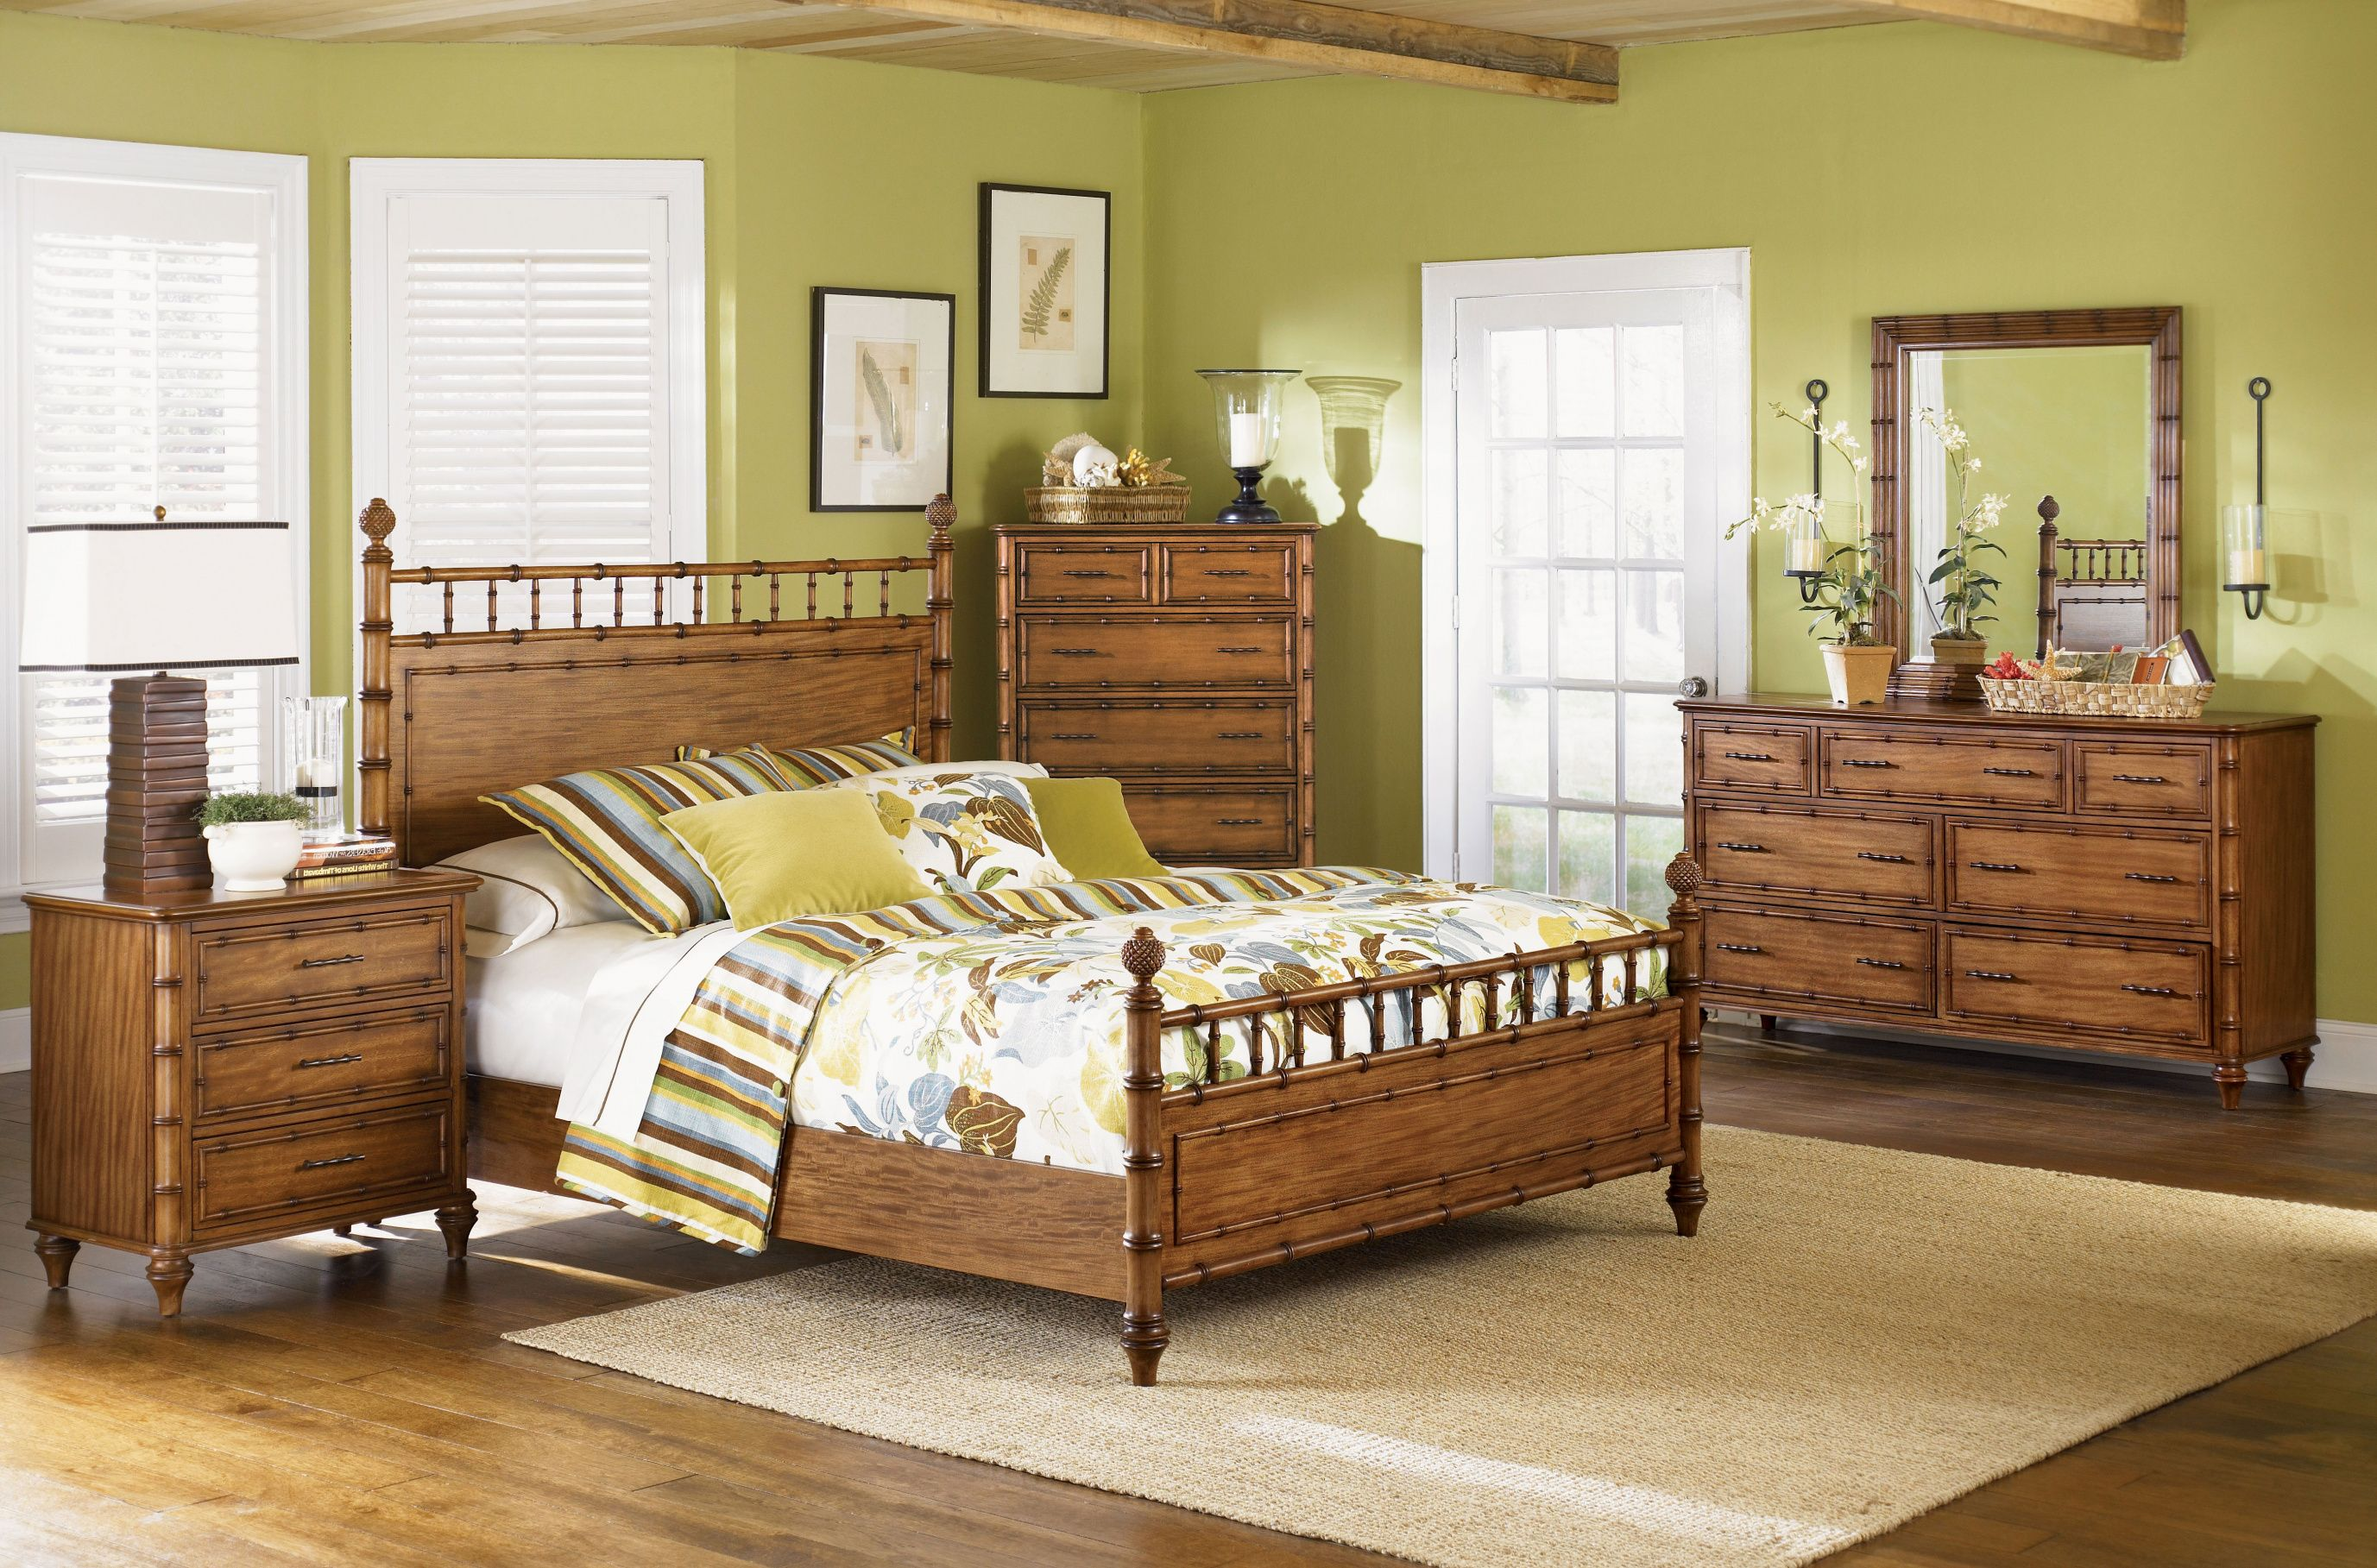 Bamboo Style Bedroom Furniture Americas Best Check More At Http Cacophonouscreations